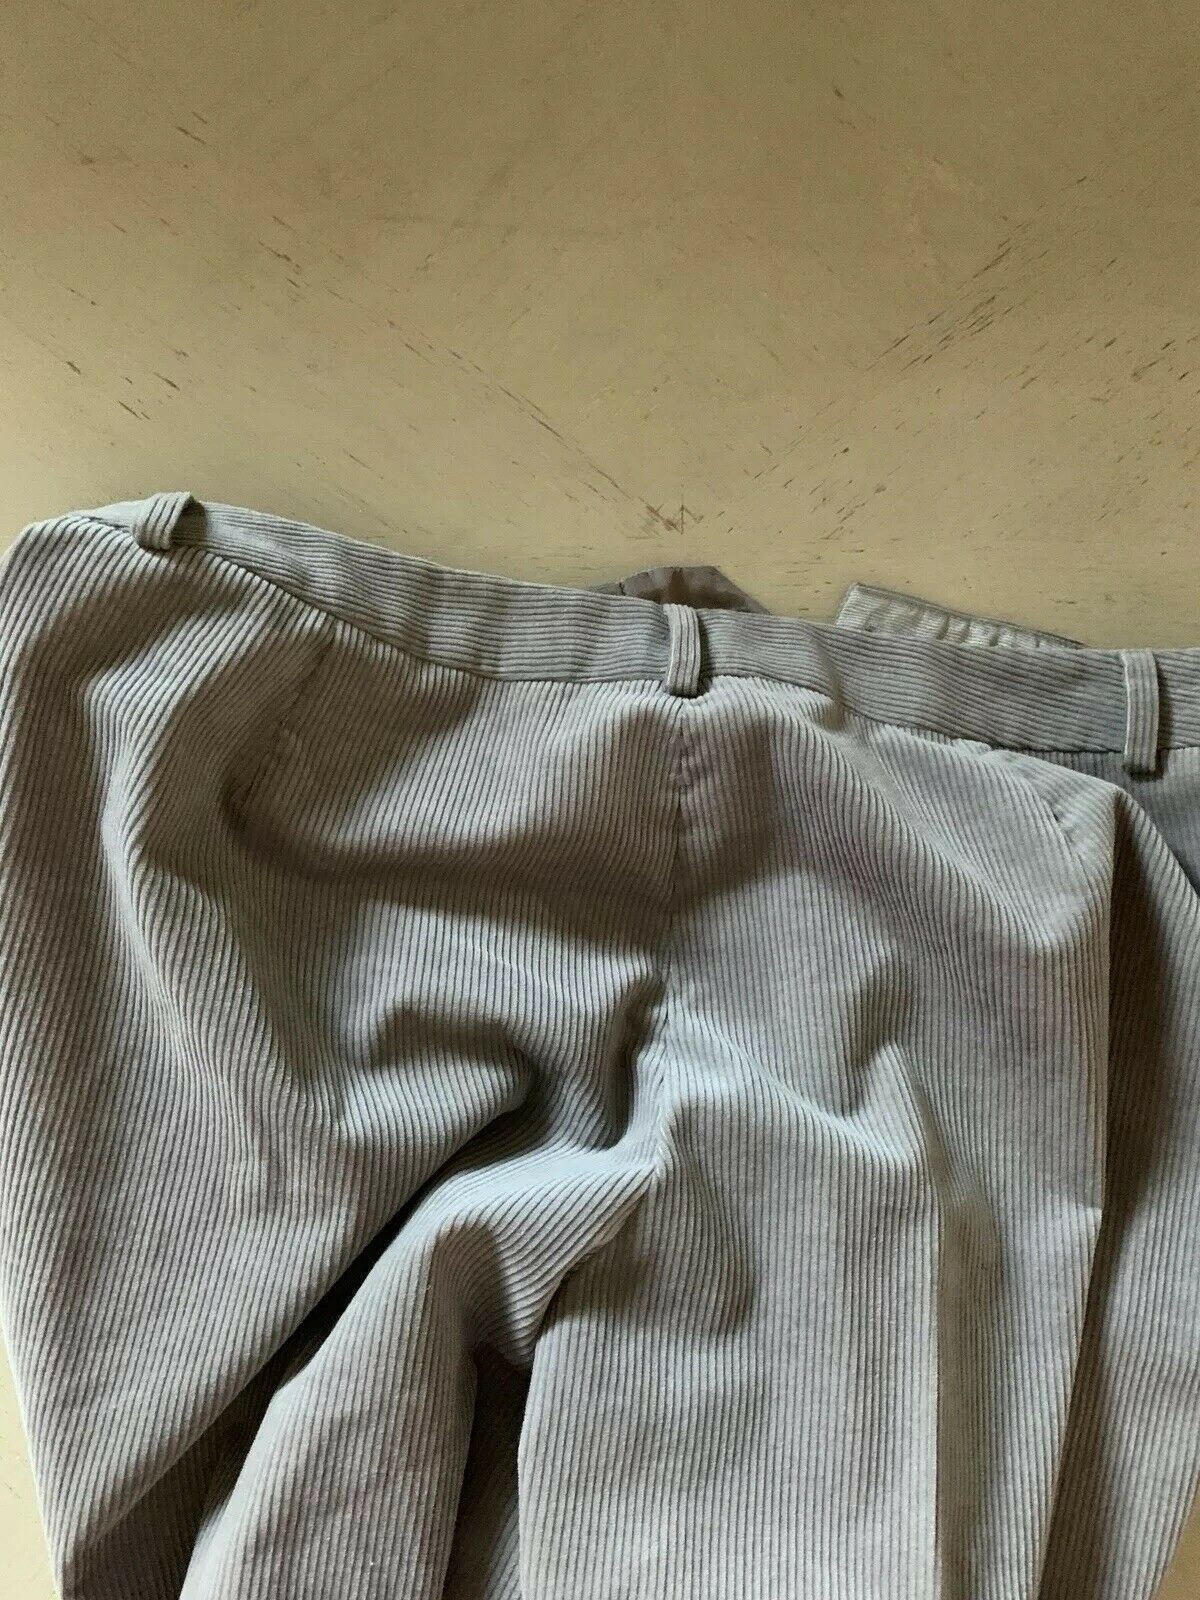 New $795 Giorgio Armani Women's Velvet Pants Gray 48 Eu Made In Italy